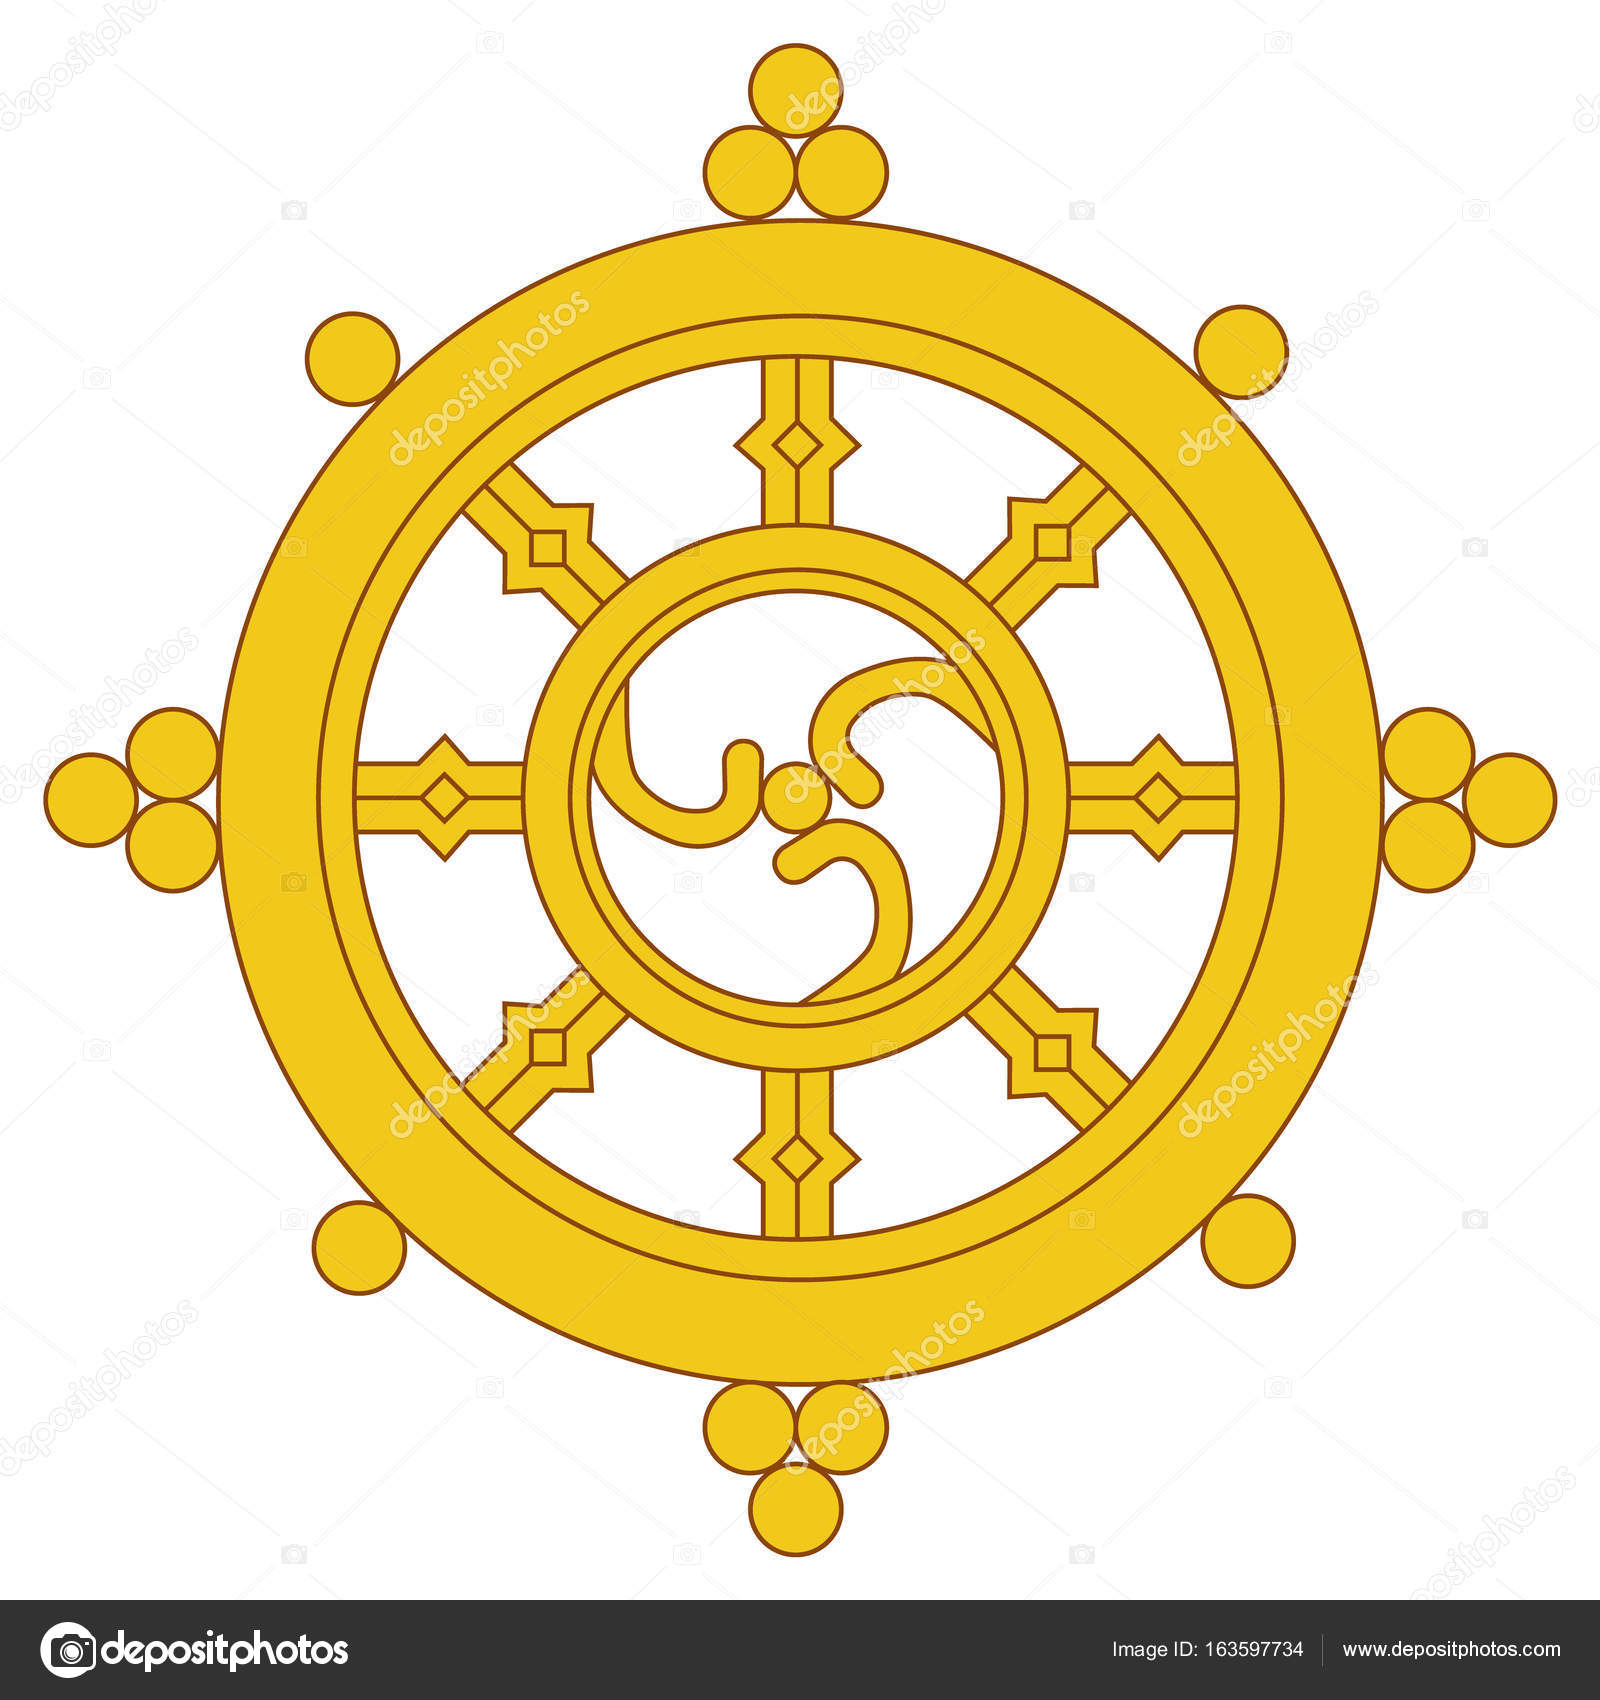 Dharma wheel raster u2014 Stock Photo